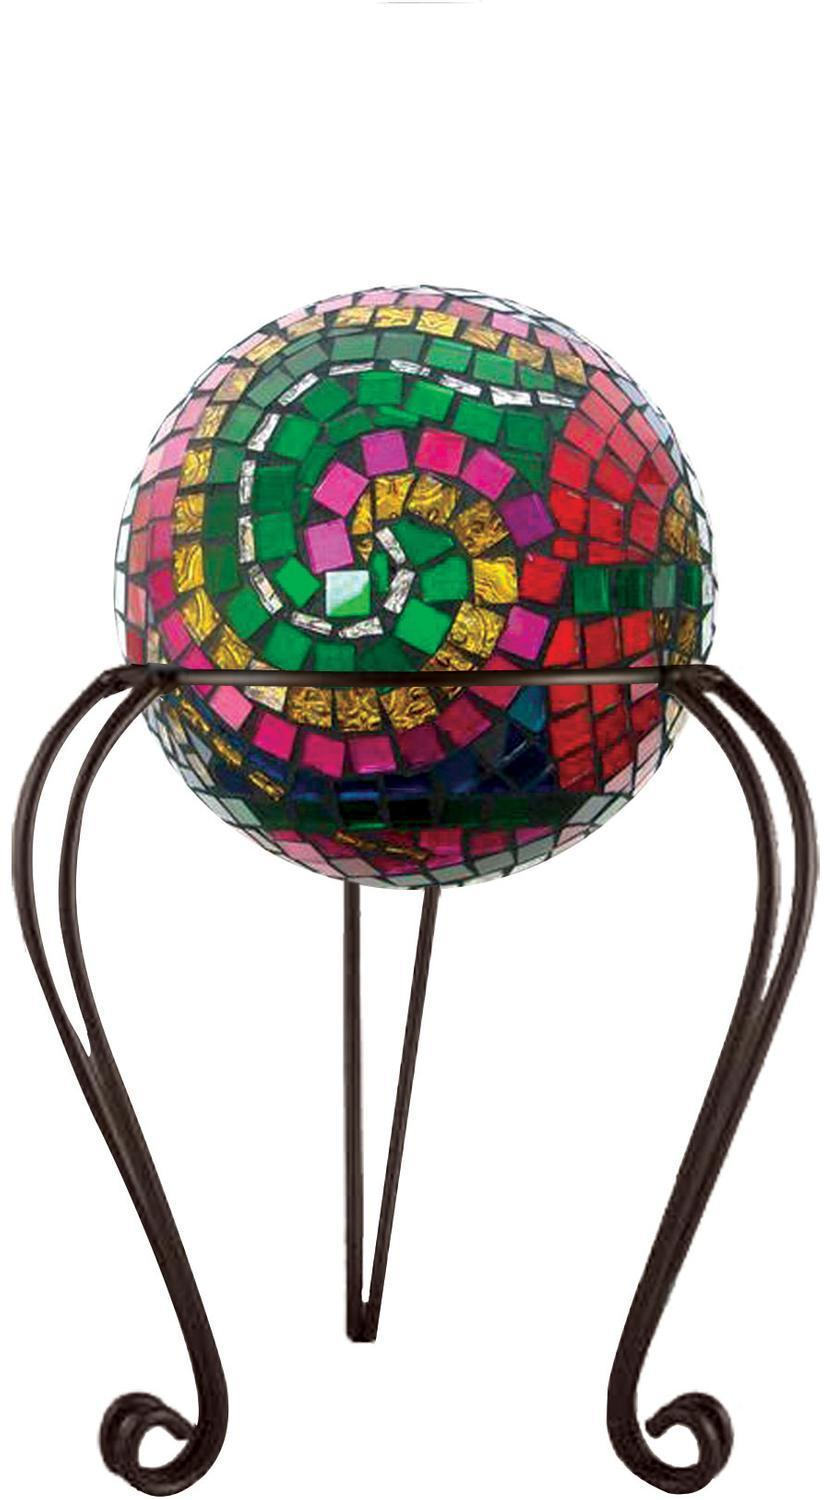 Garden Stand Globe Holder Displays Delphi Glass